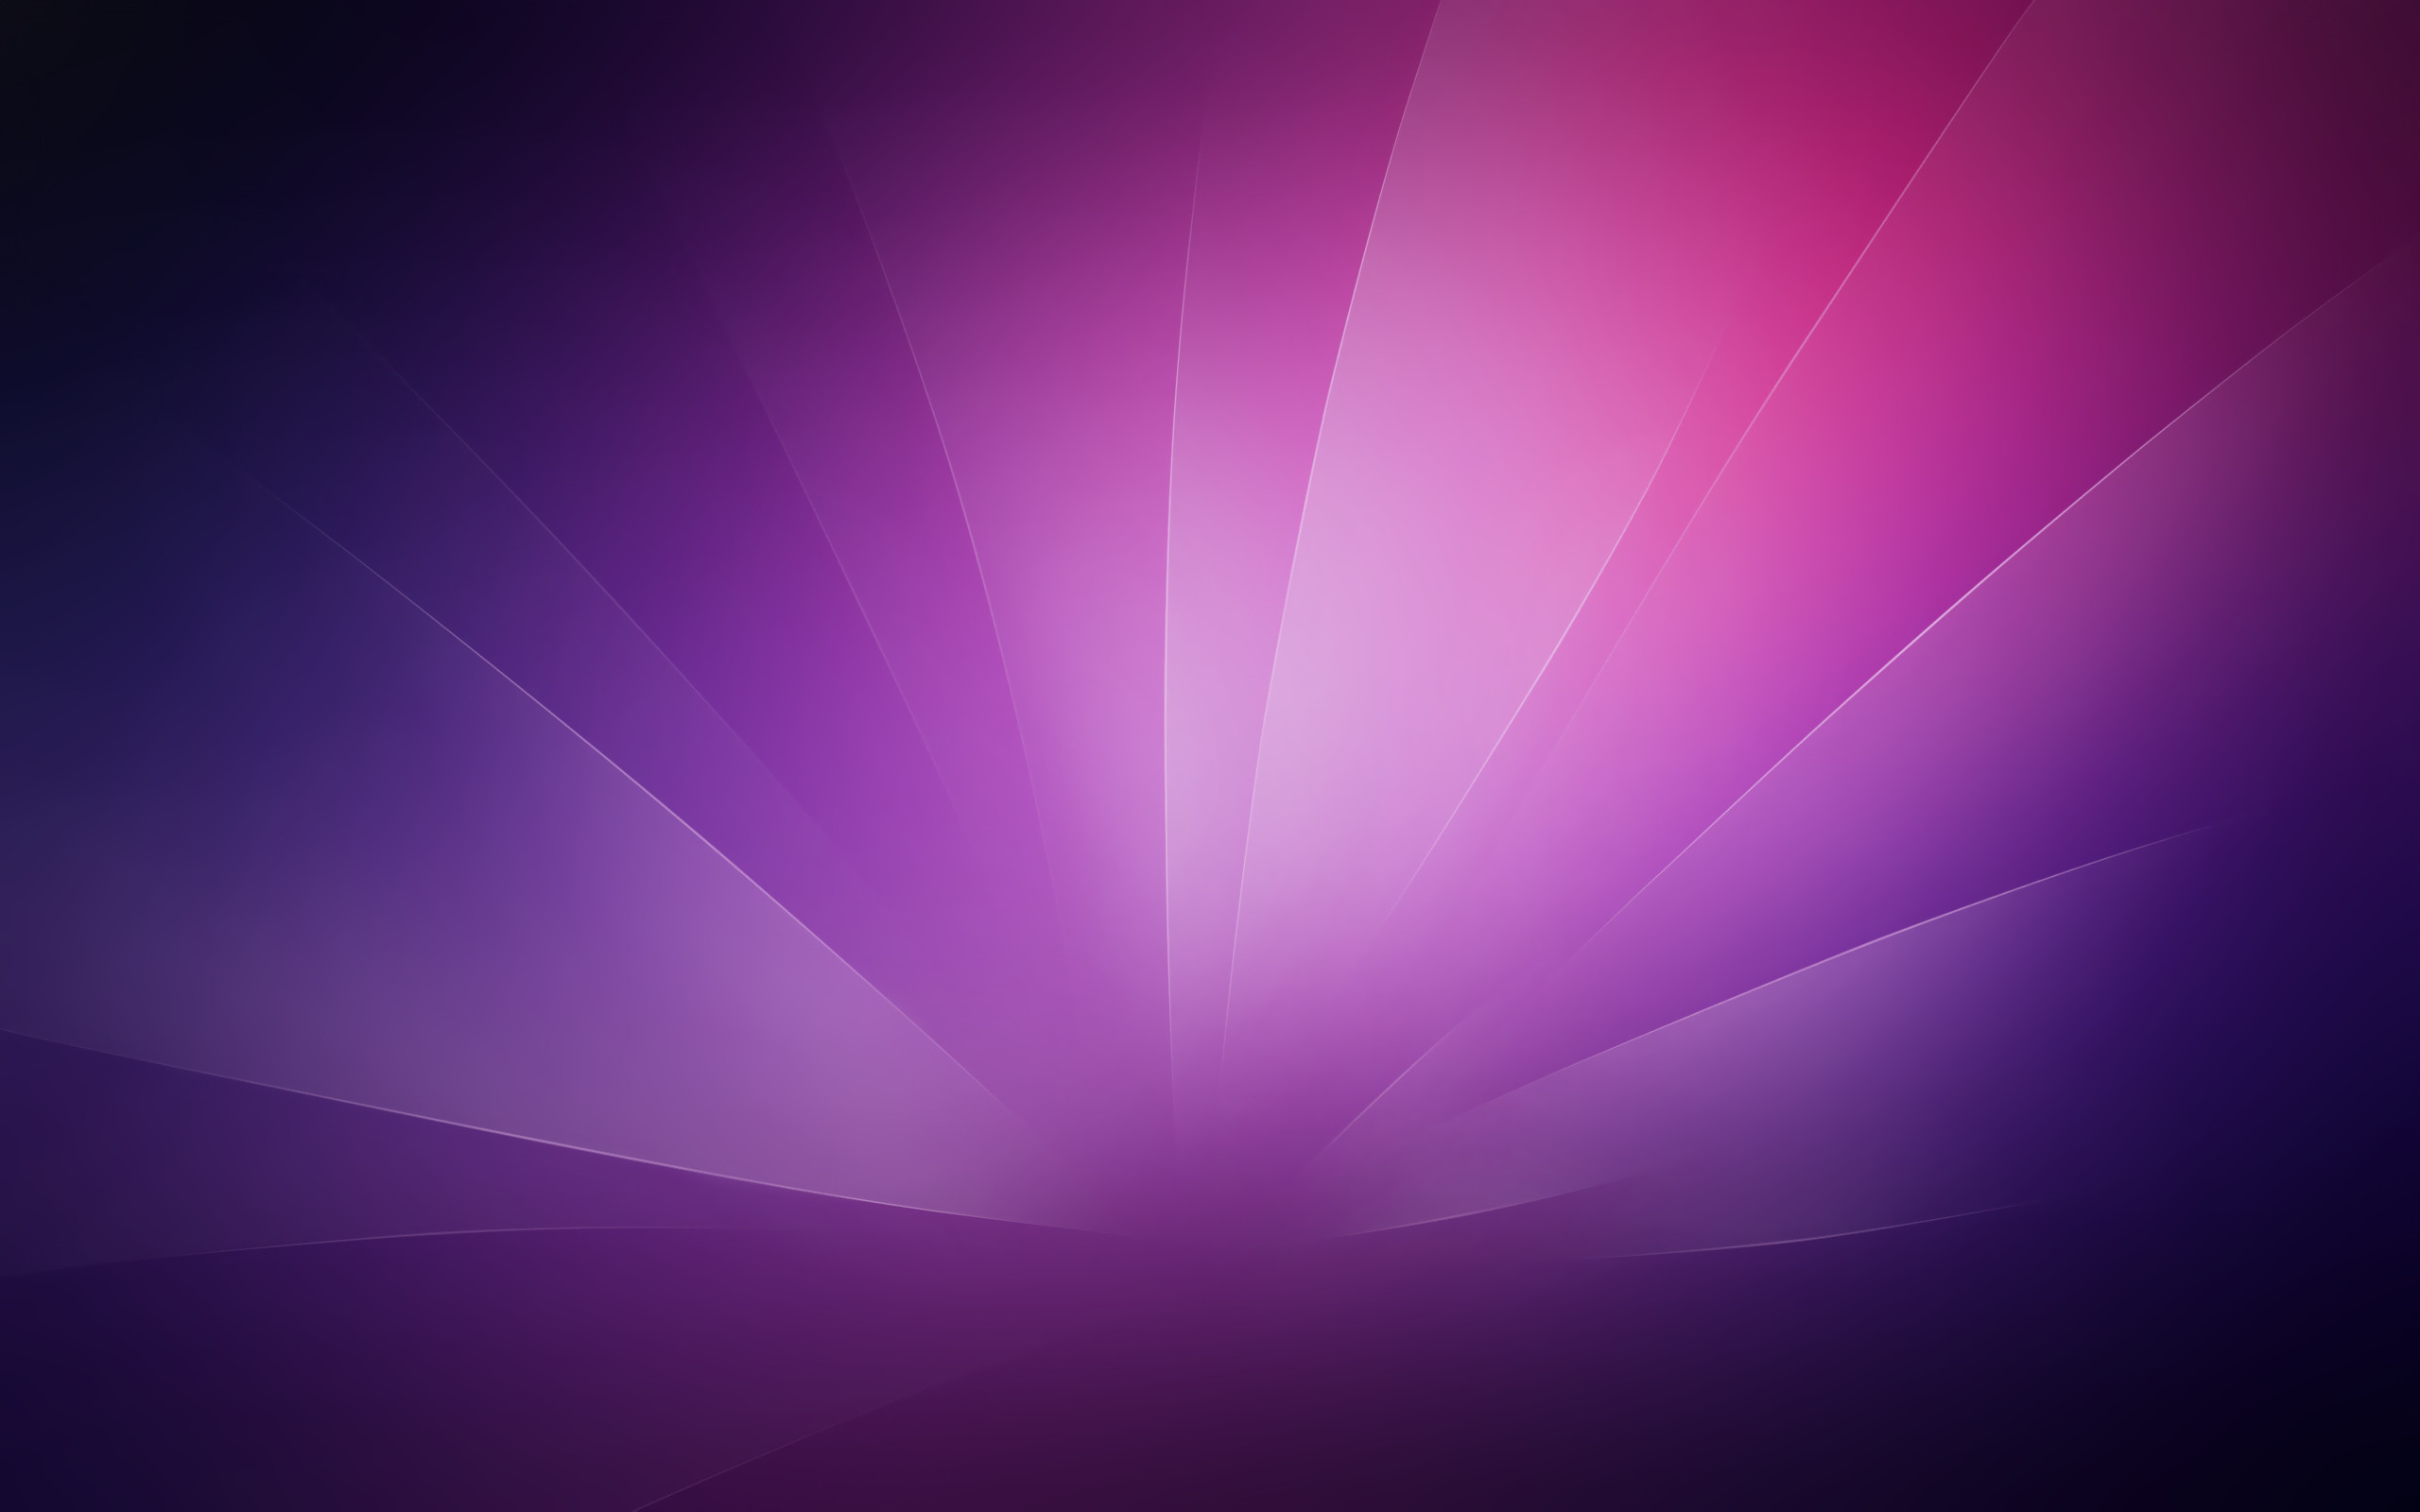 Pink and purple backgrounds 49 pictures 2560x1600 images for cool pink and purple backgrounds 2560x1600 junglespirit Image collections